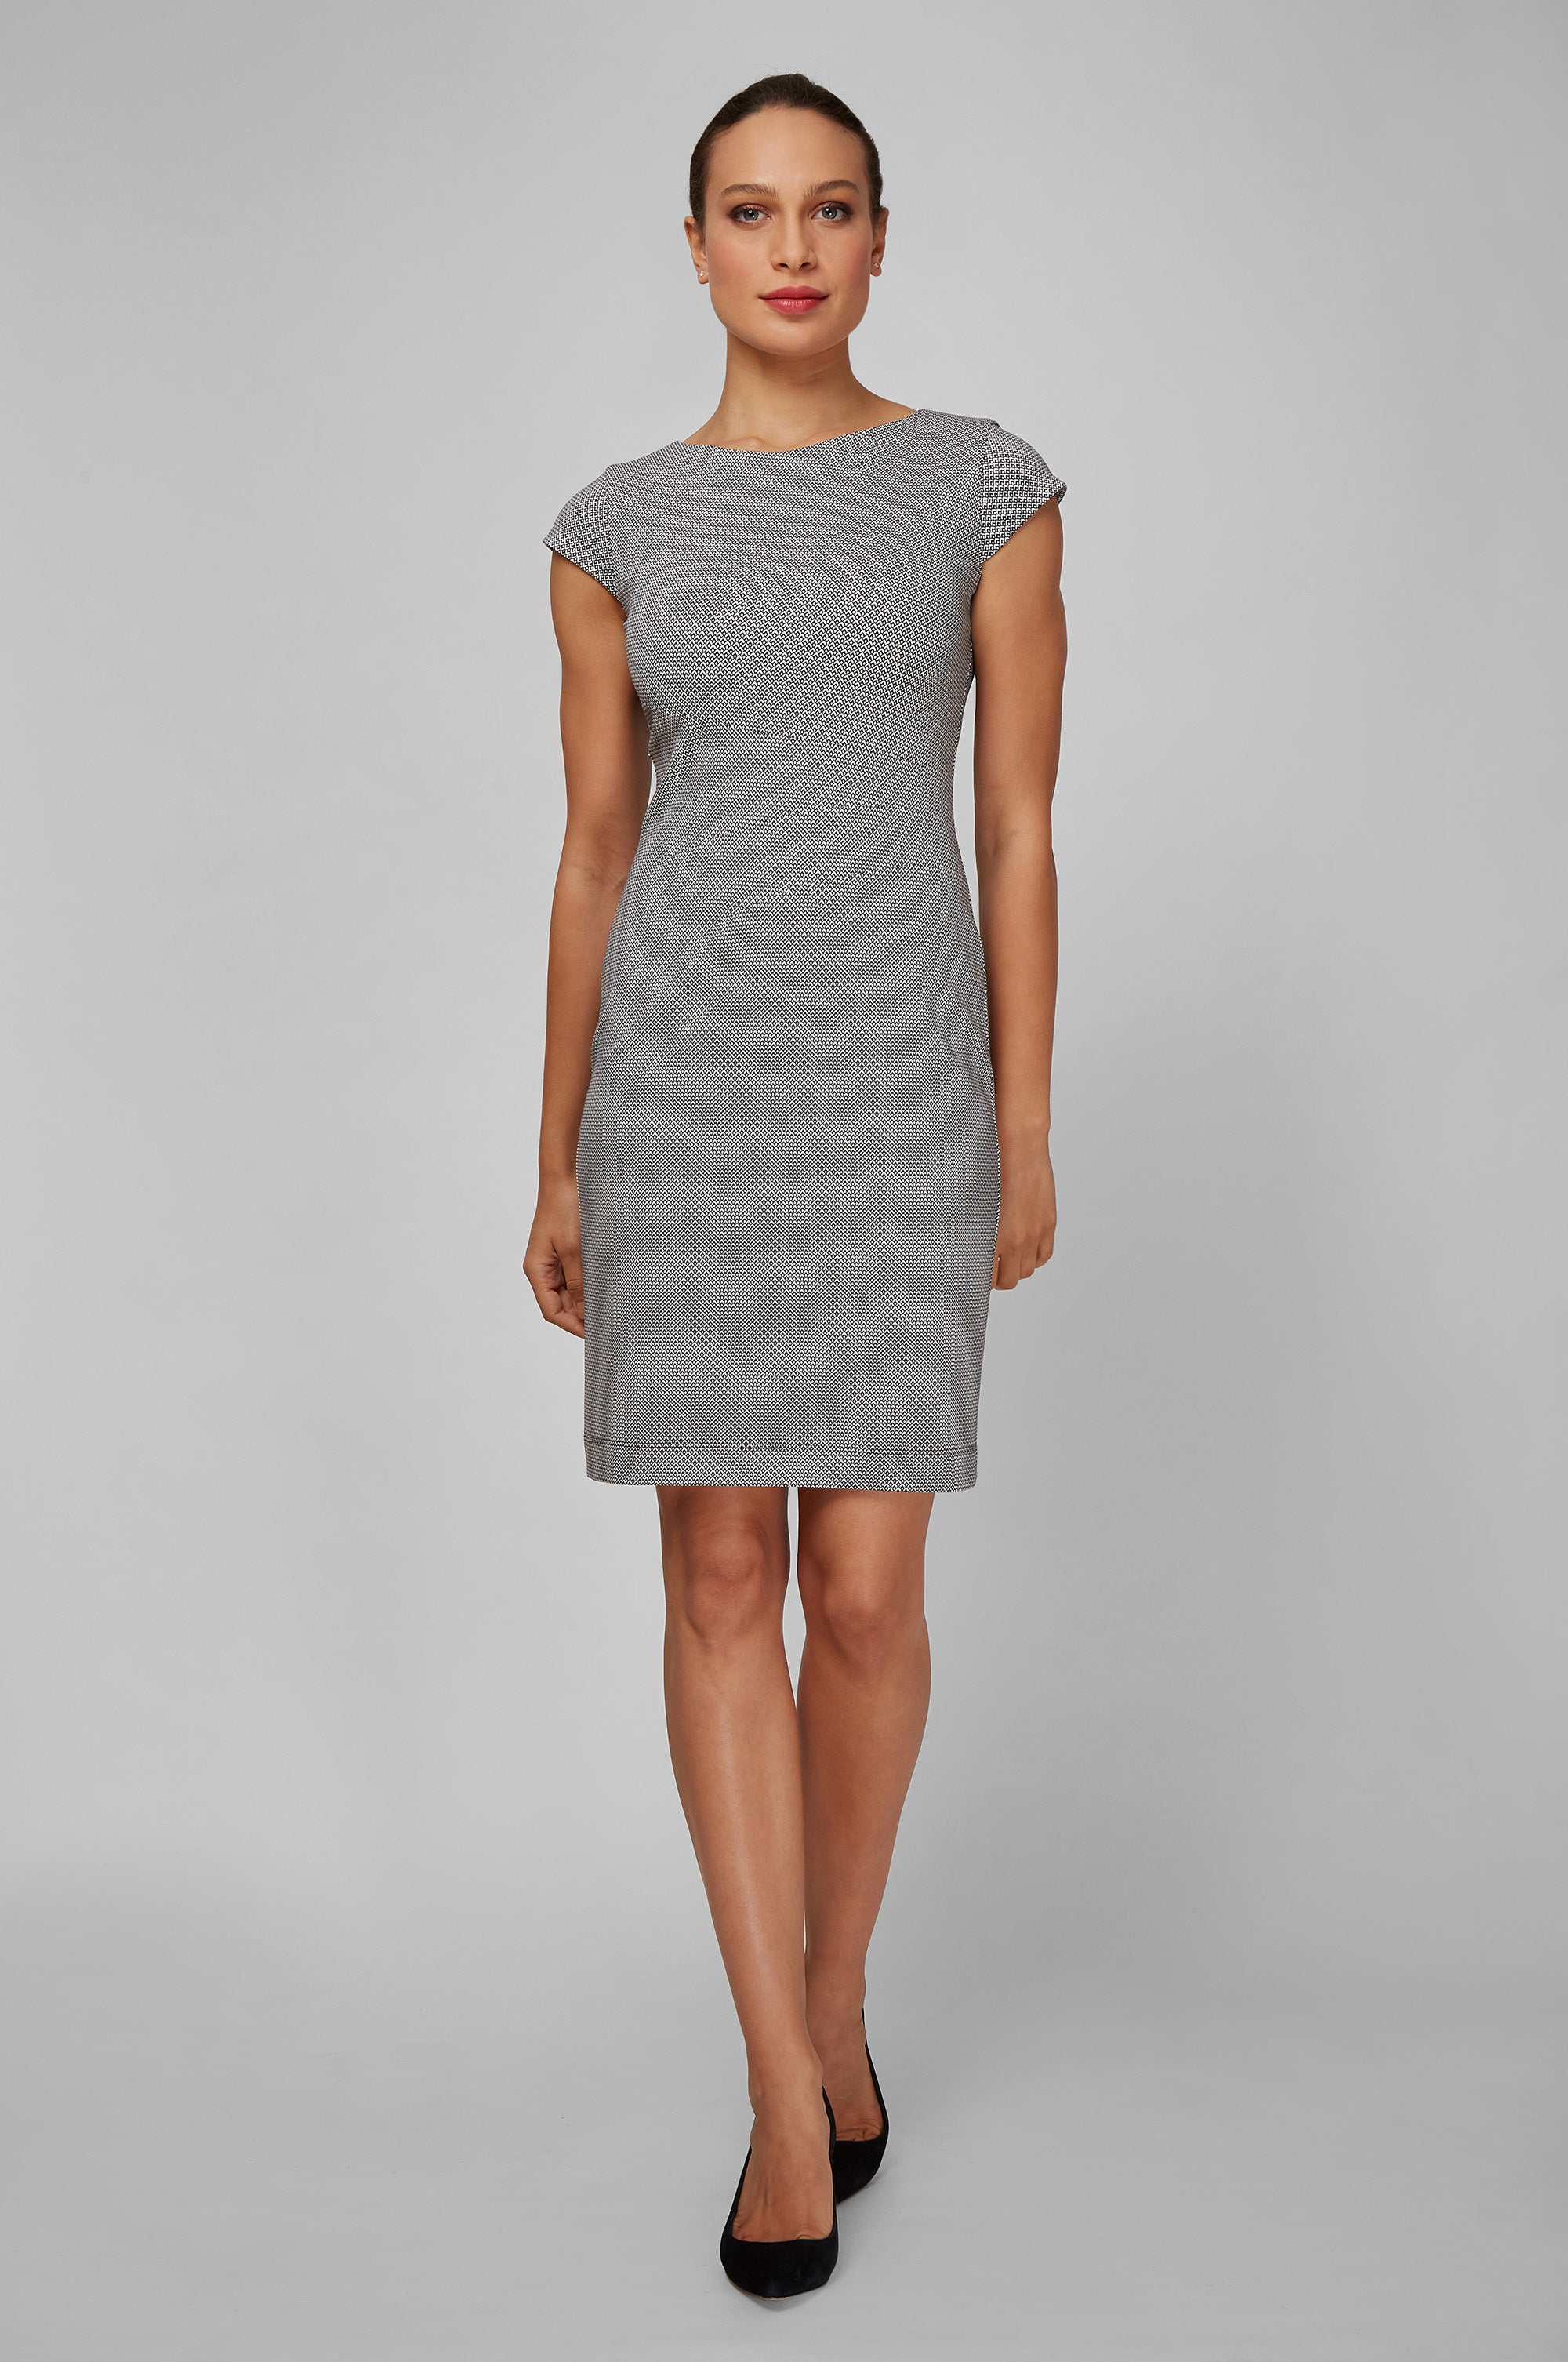 Women's Verana Dress in Diamond Print | Nora Gardner